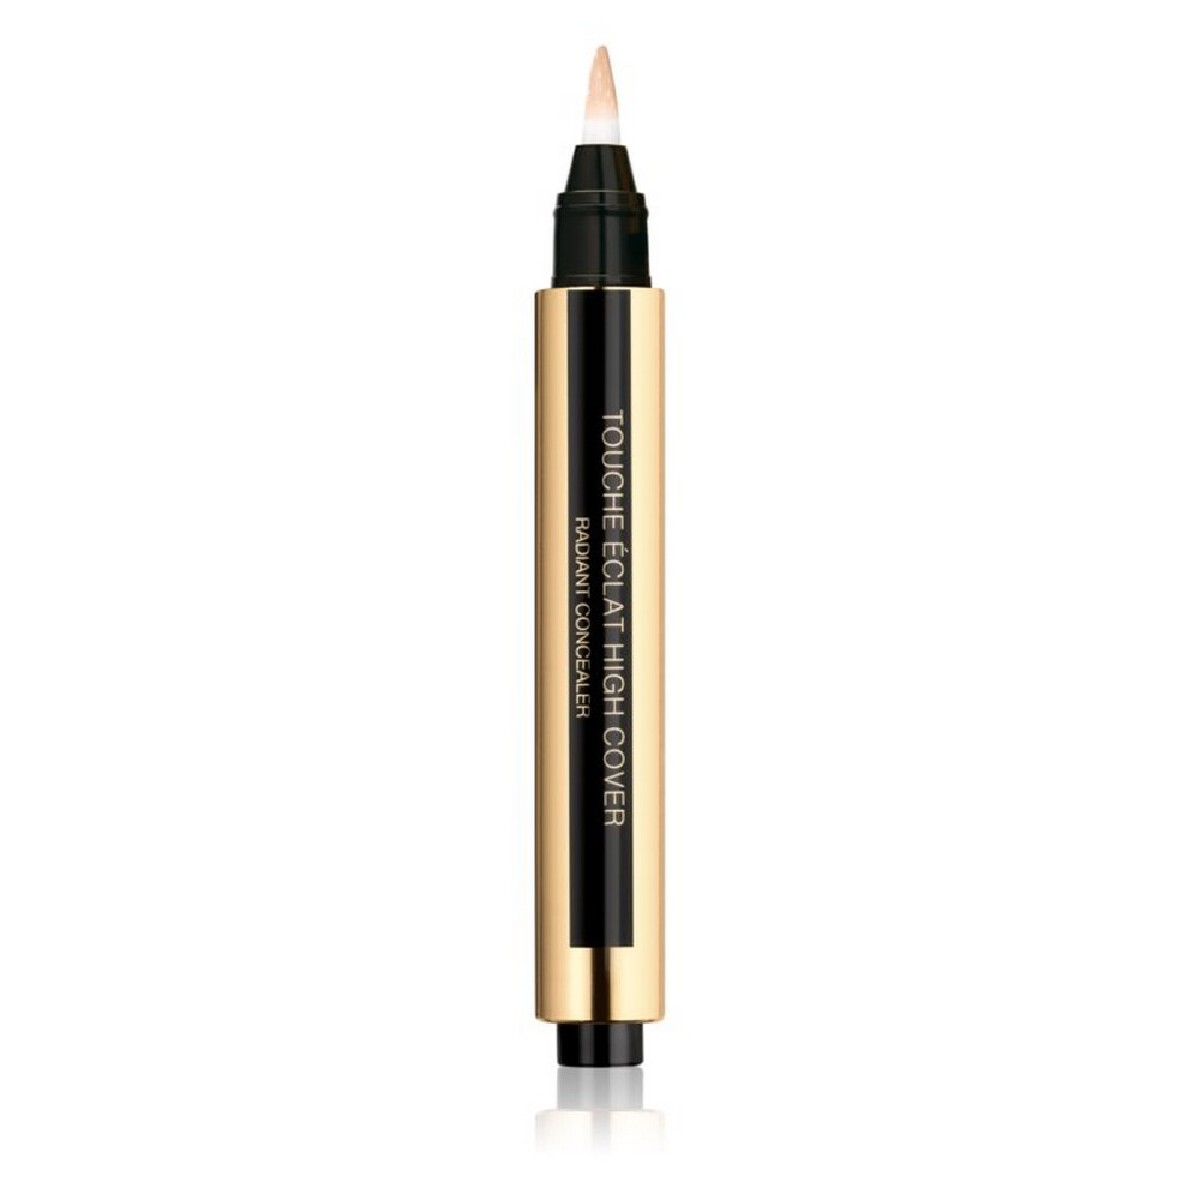 YSL Touche Eclat High Cover Radiant Concealer